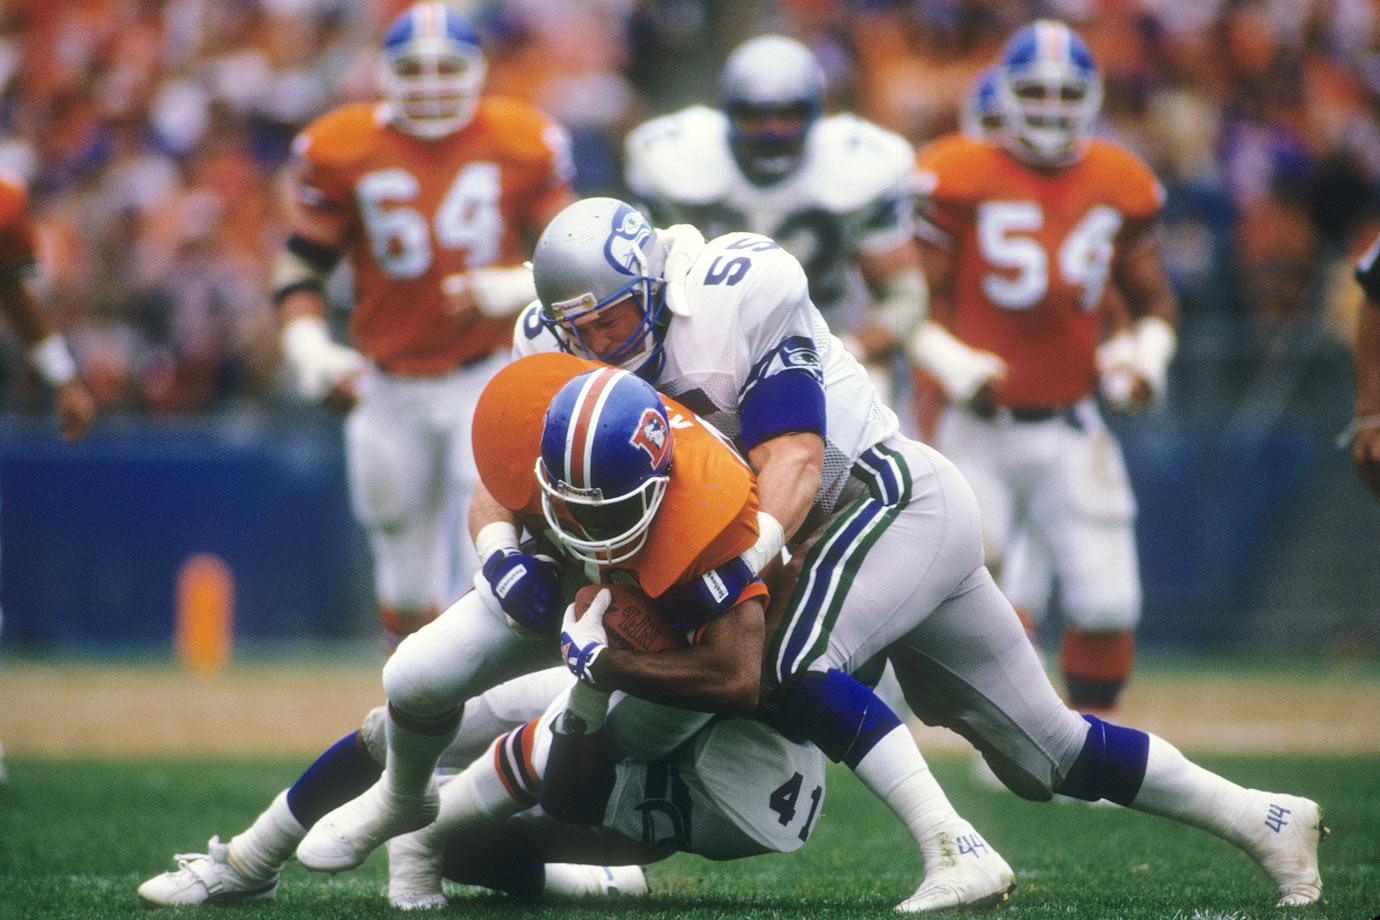 The Seattle Seahawks took Bosworth in the 1987 Supplemental Draft and signed him to the biggest rookie contract in NFL history (10 years, $11 million).